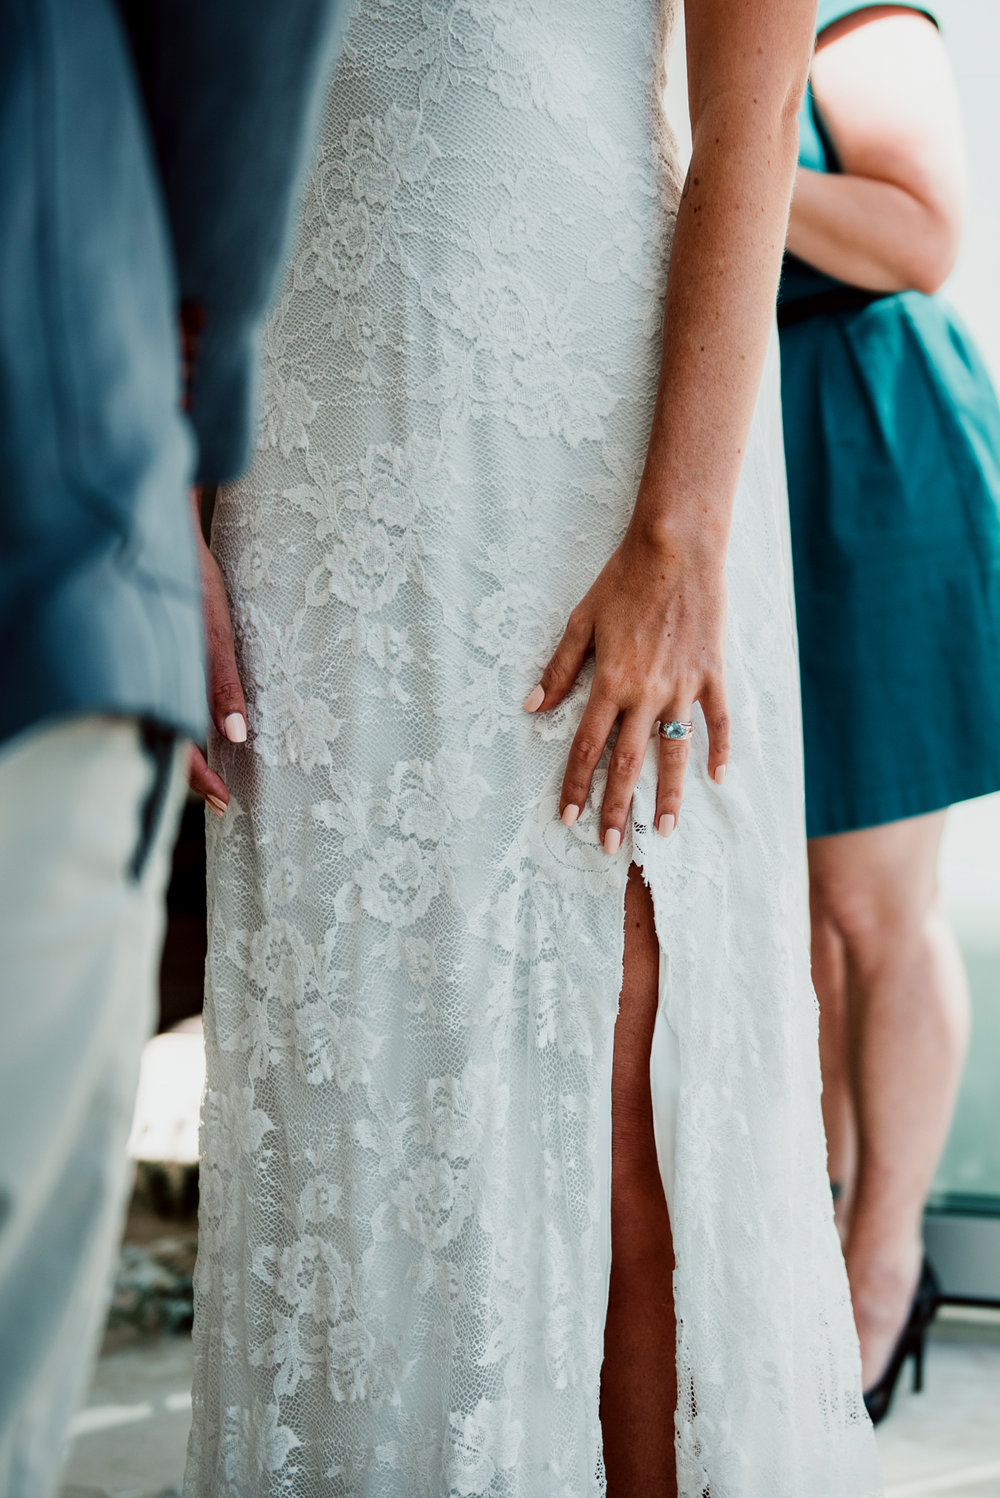 Bloodwood Botanica | GRACE LOVES LACE GOWN NOOSA WEDDING